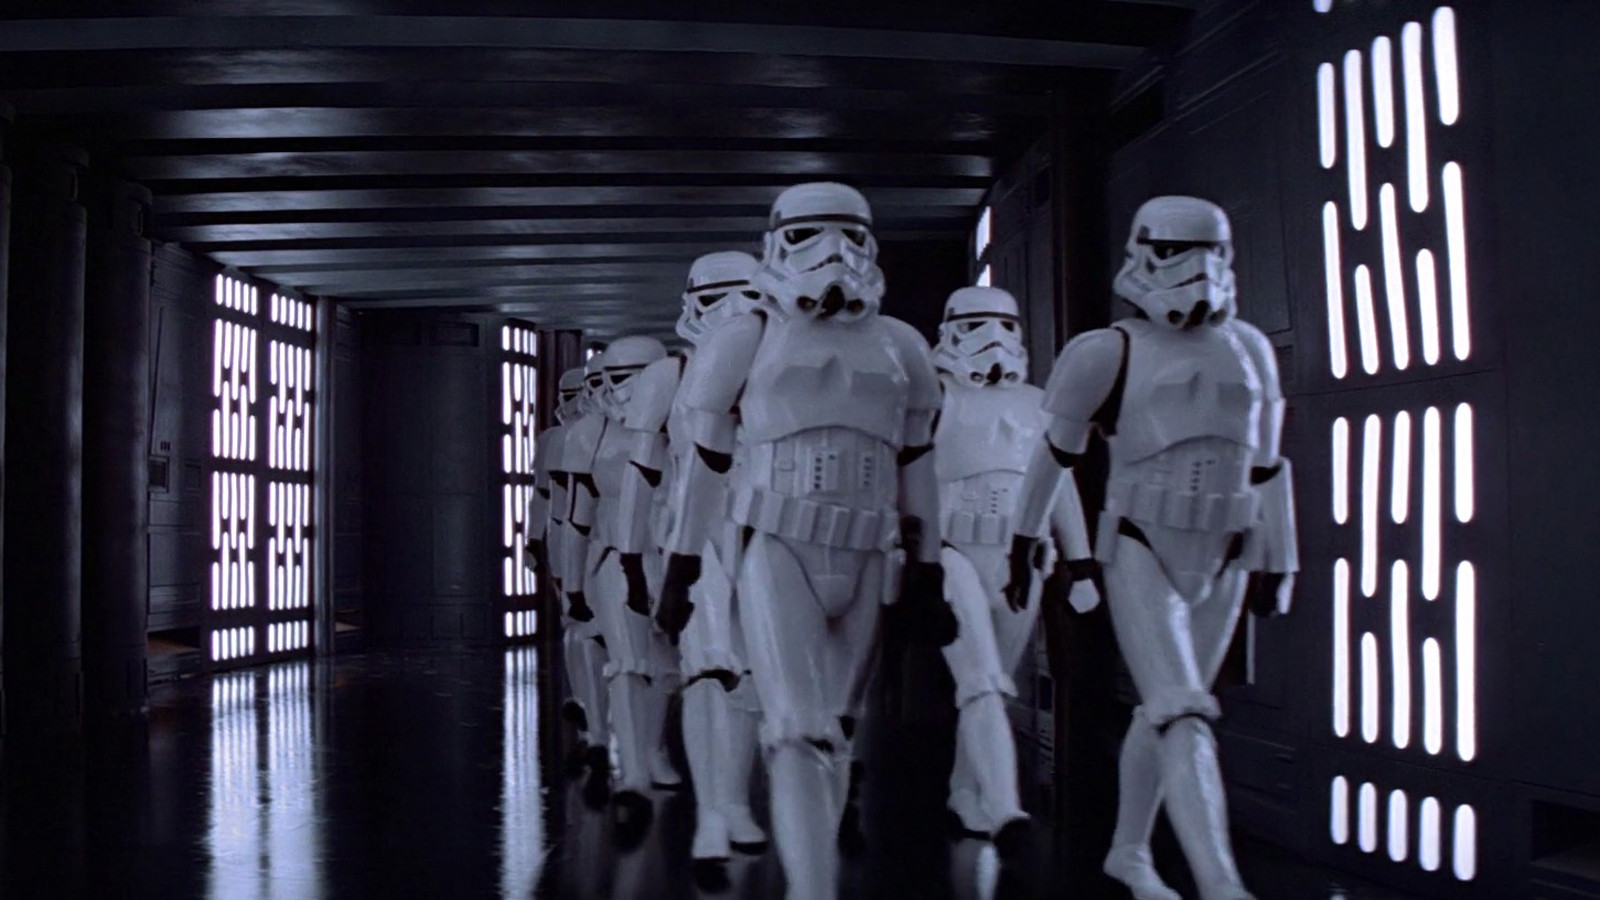 Stormtroopers a new hope 9.0